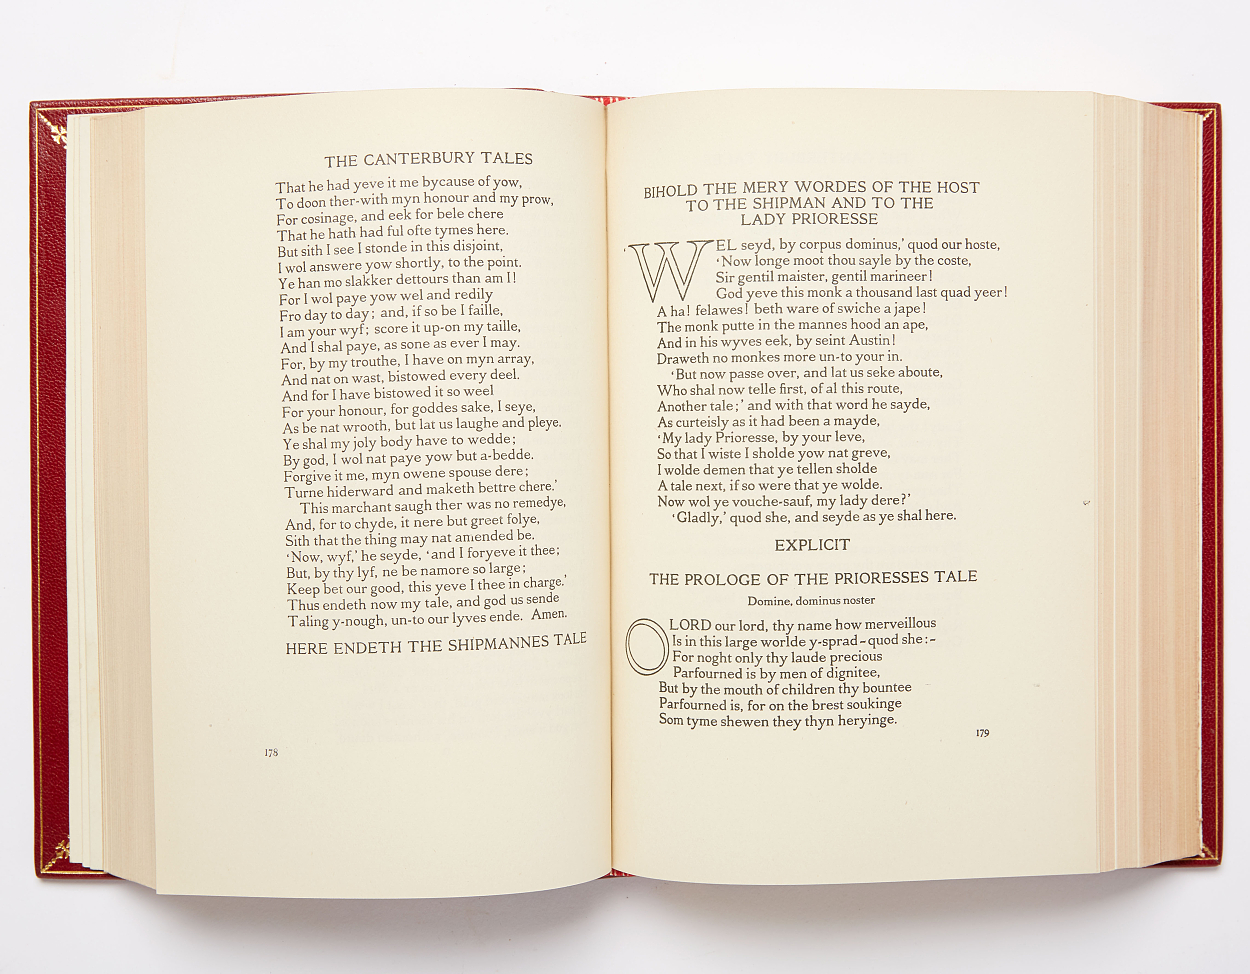 Chaucer in fine binding by Bayntun Riviere